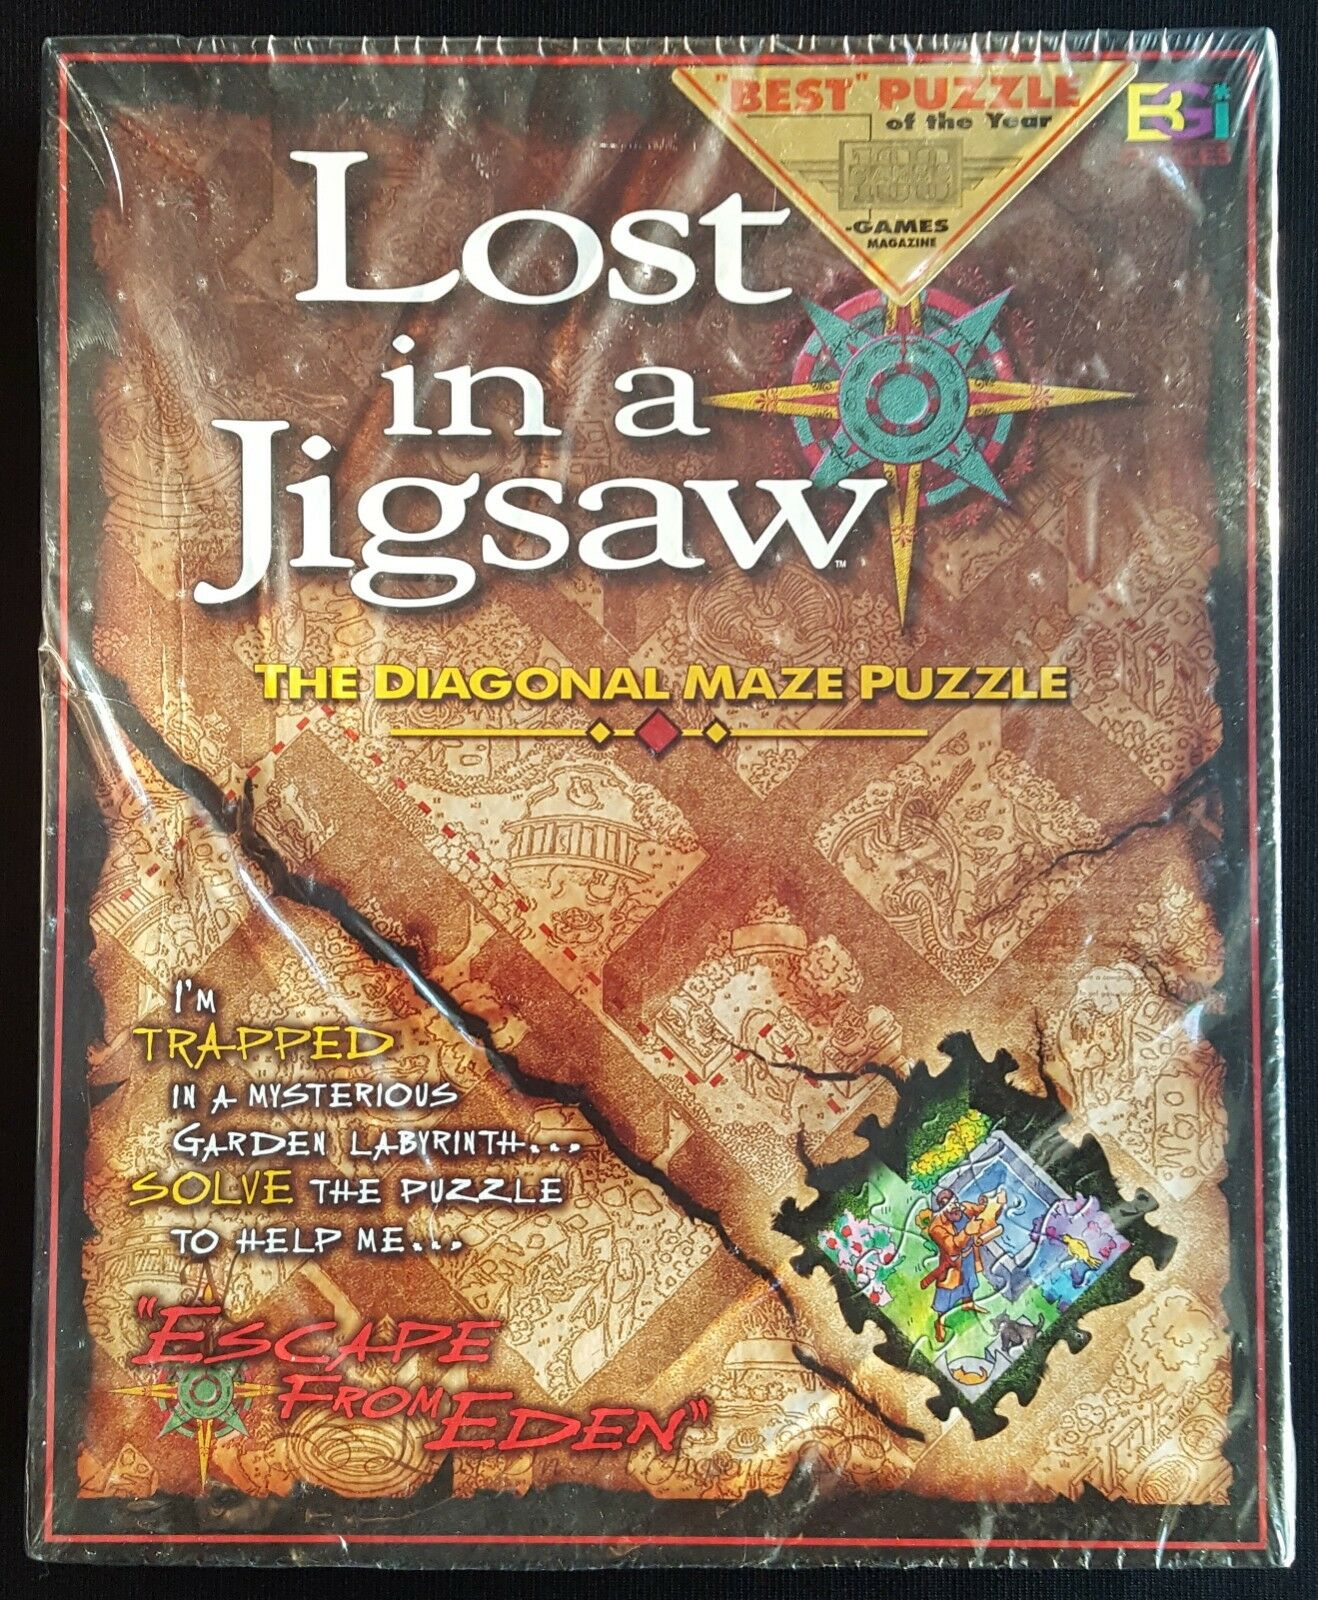 Lost In A Jigsaw (The Diagonal Maze Puzzle Escape From Eden) By BGI - 1997 - NEW